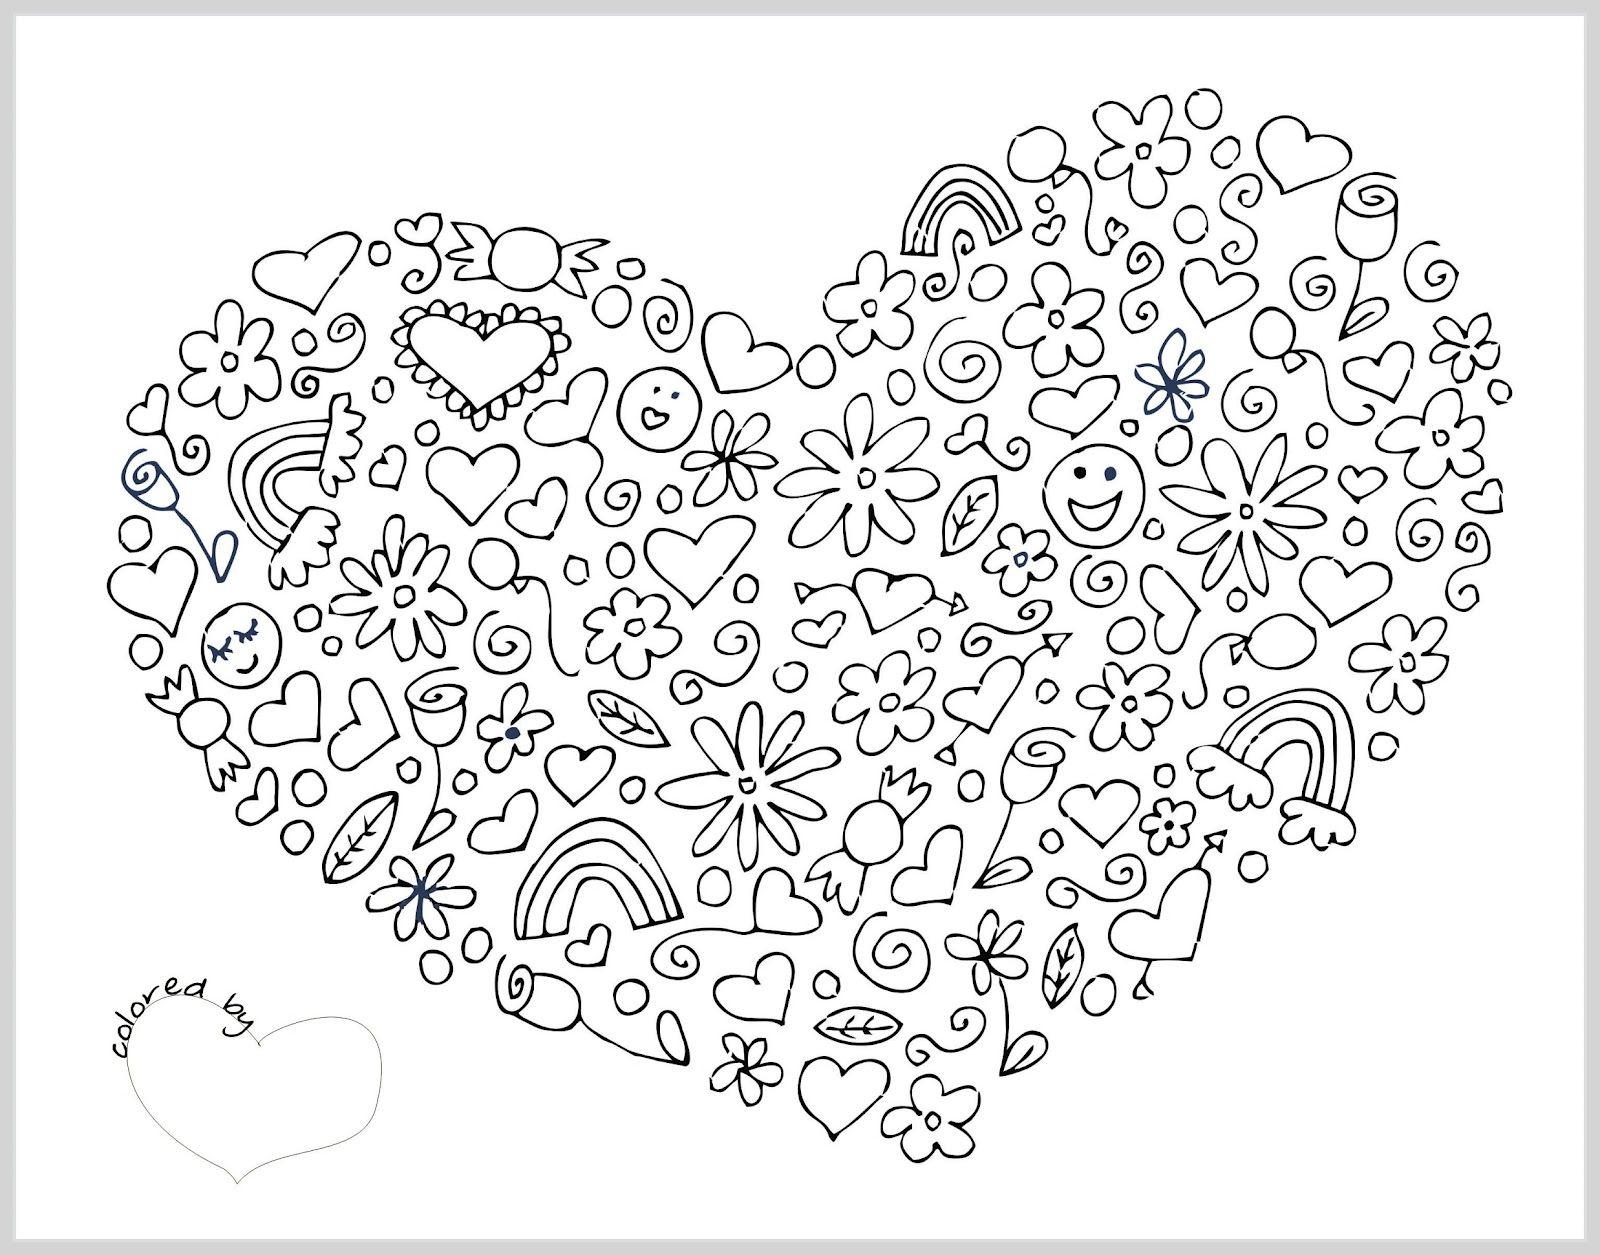 Free coloring pages com printable - Free Coloring Pages For Adults Printable Hard To Color Coloring